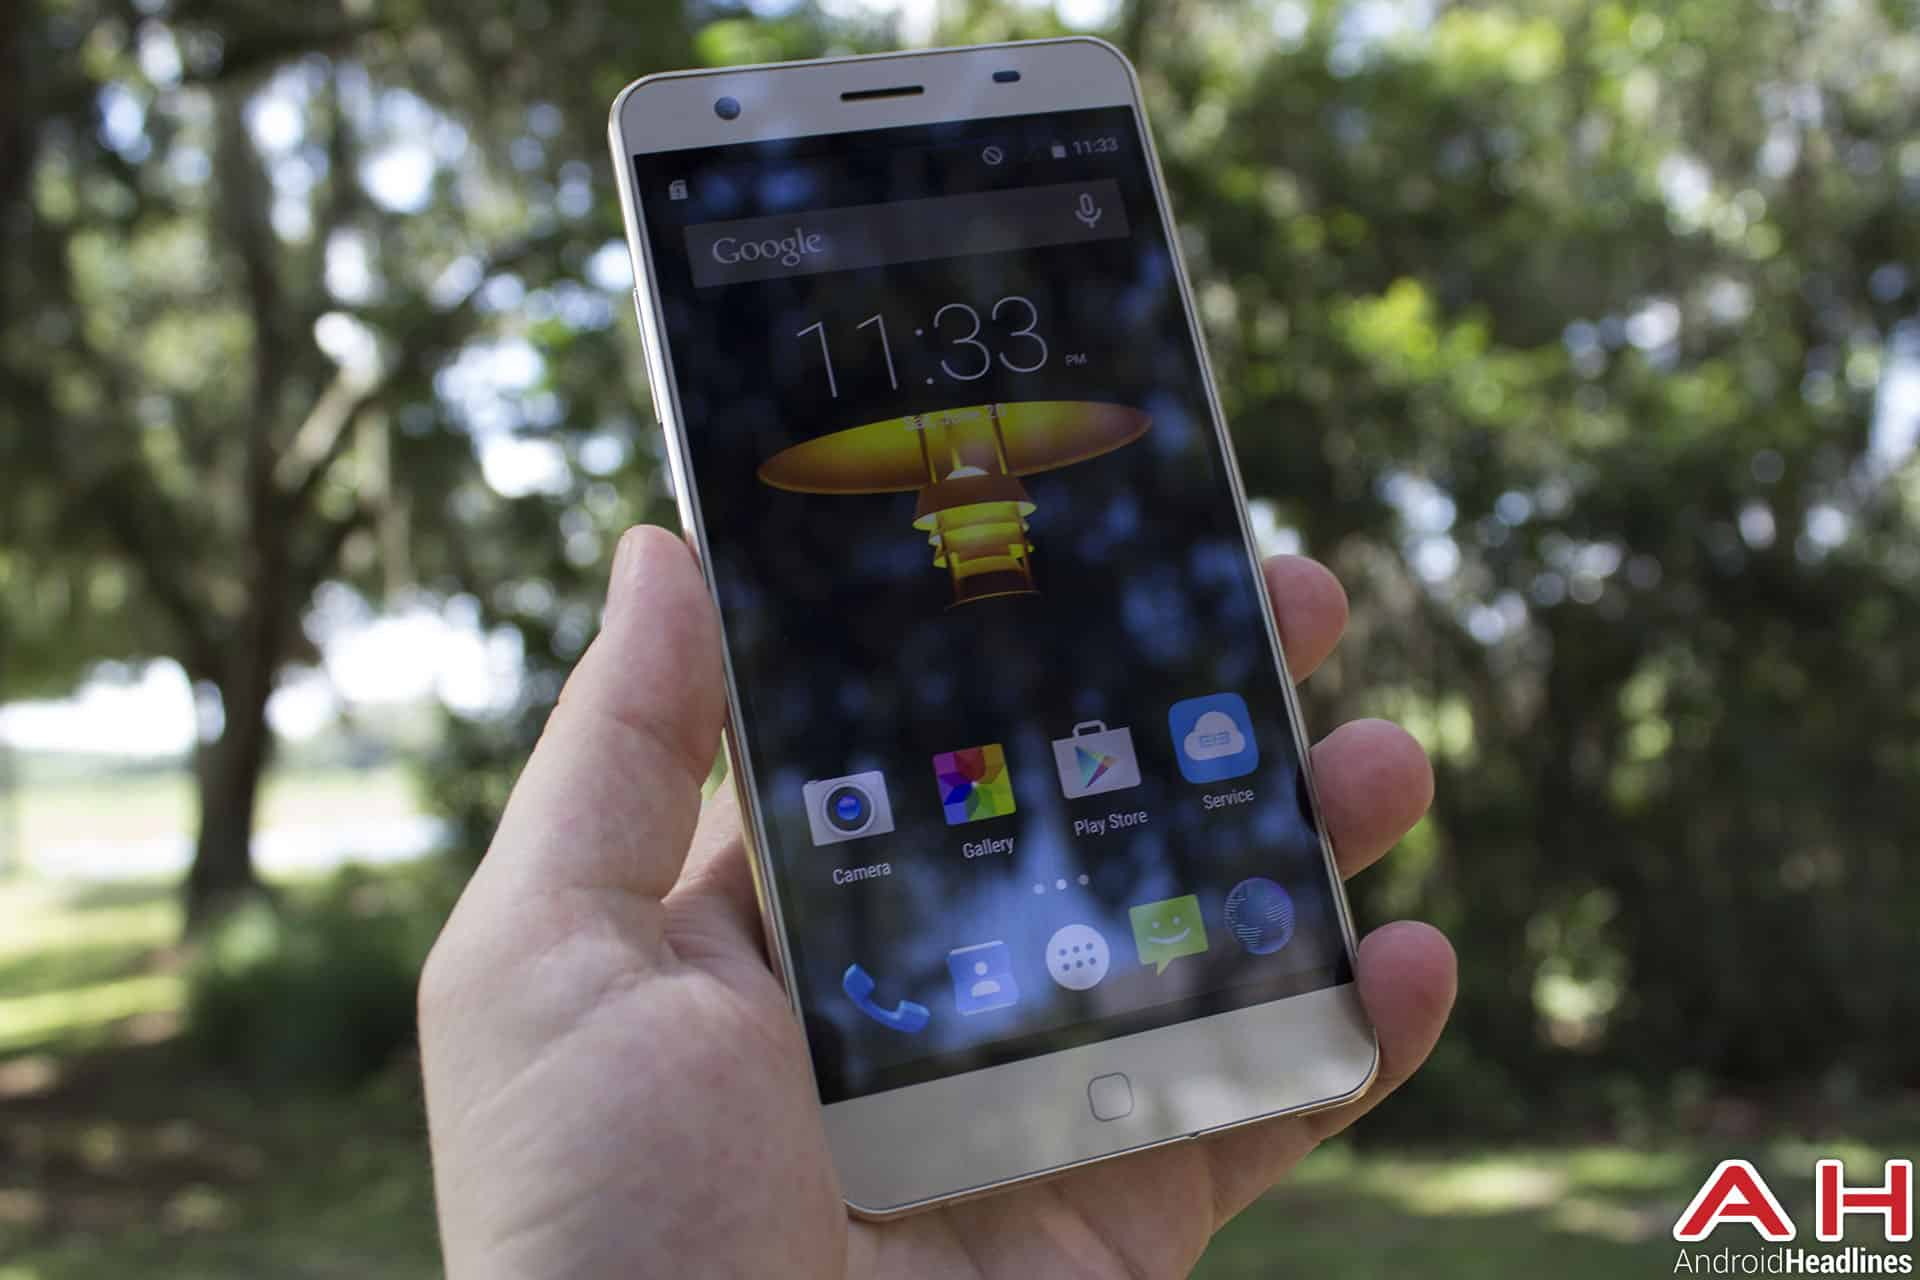 Elephone-P7000-Review-AH-02